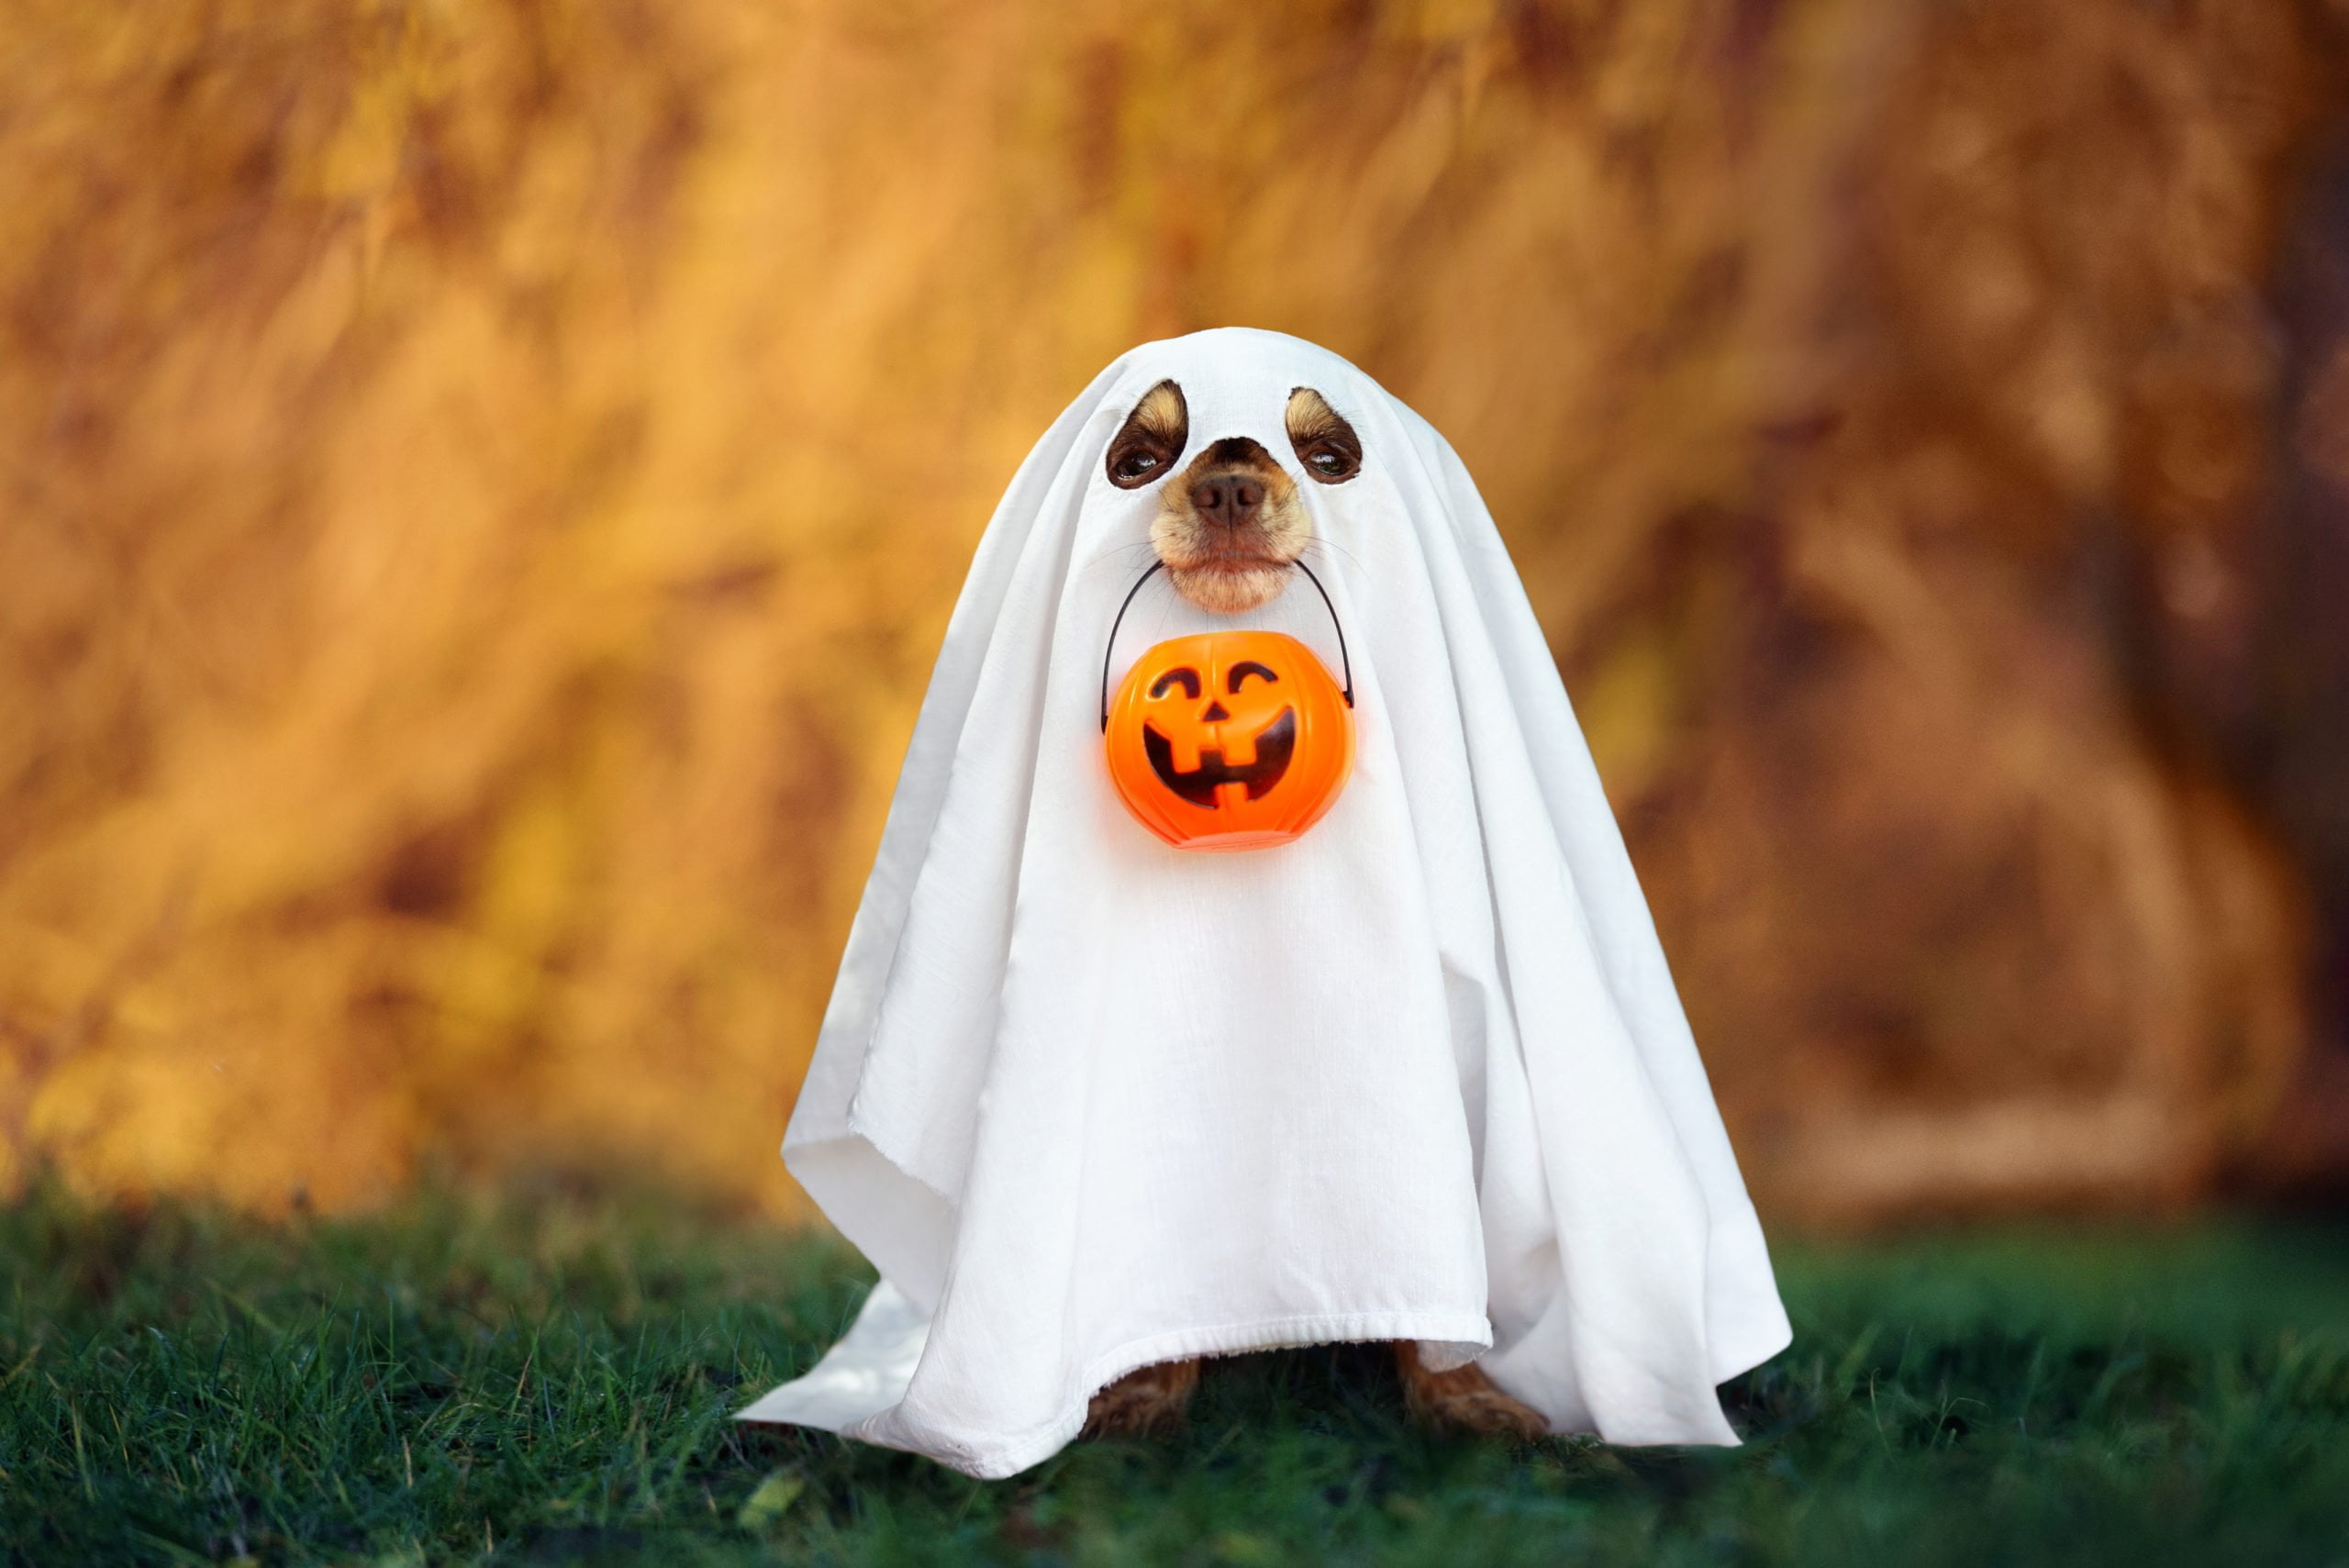 Beware of ghosts with cold noses!